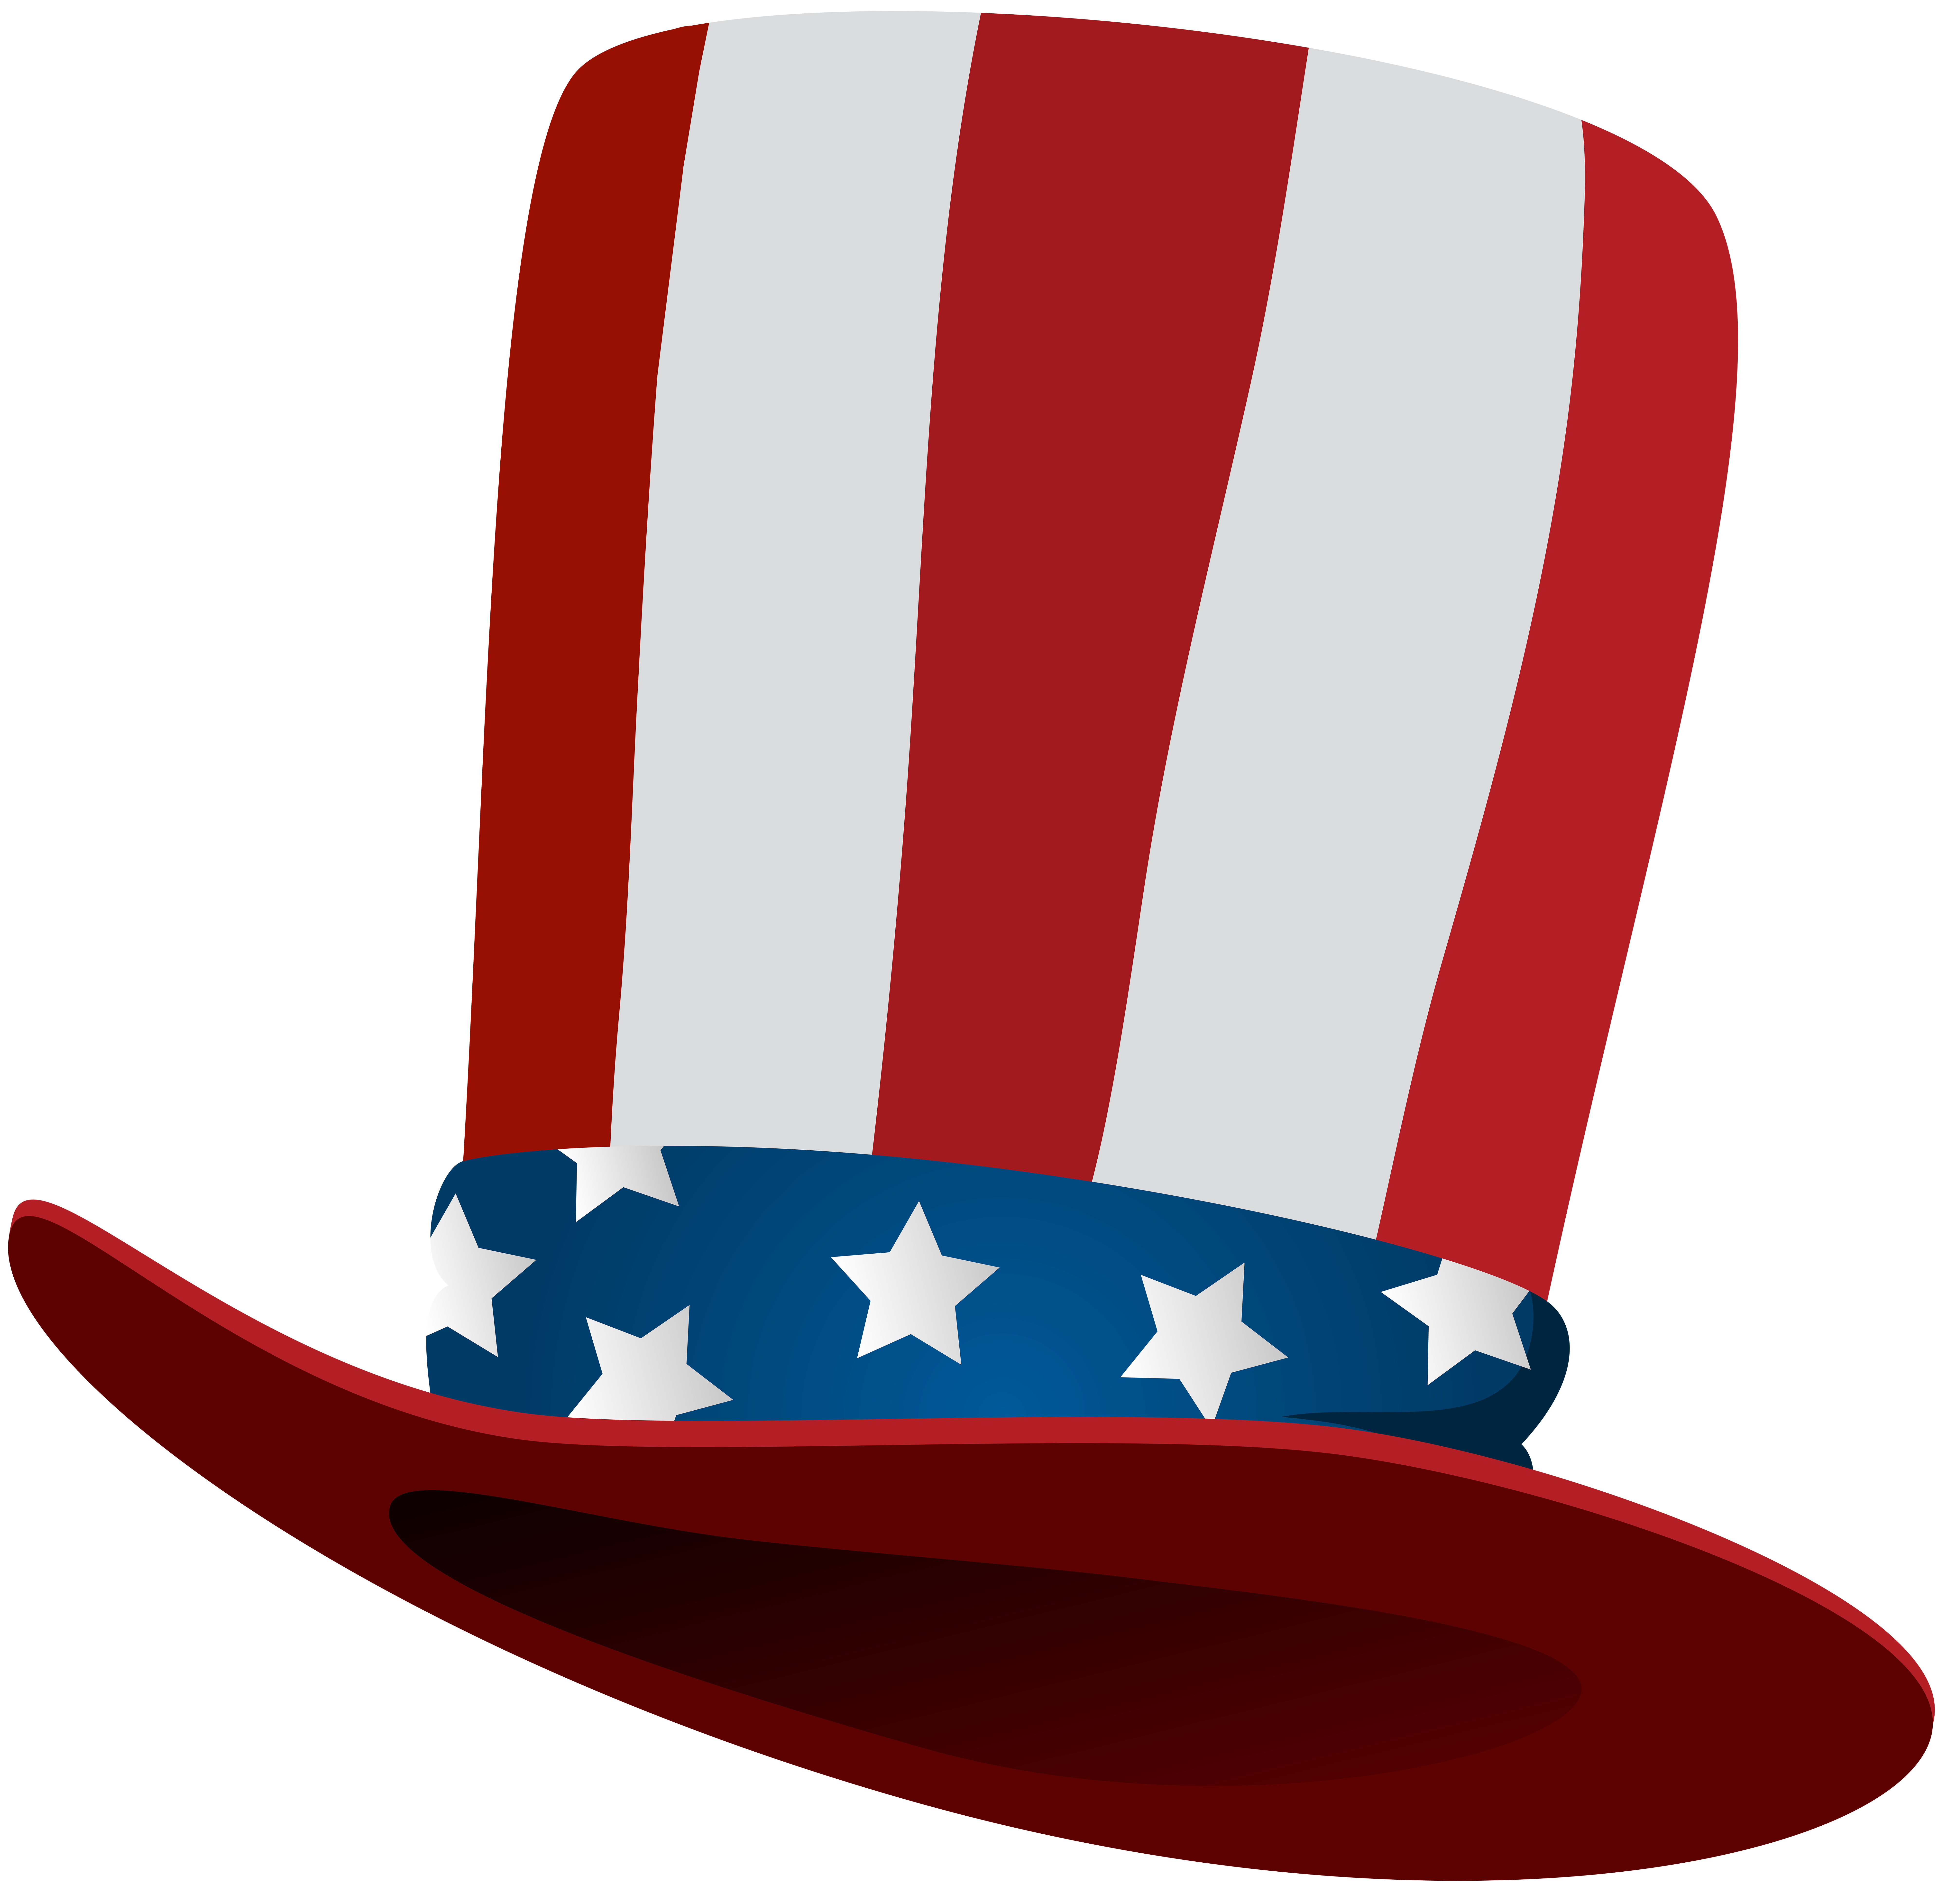 Uncle sam hat png. Cartoon image gallery yopriceville